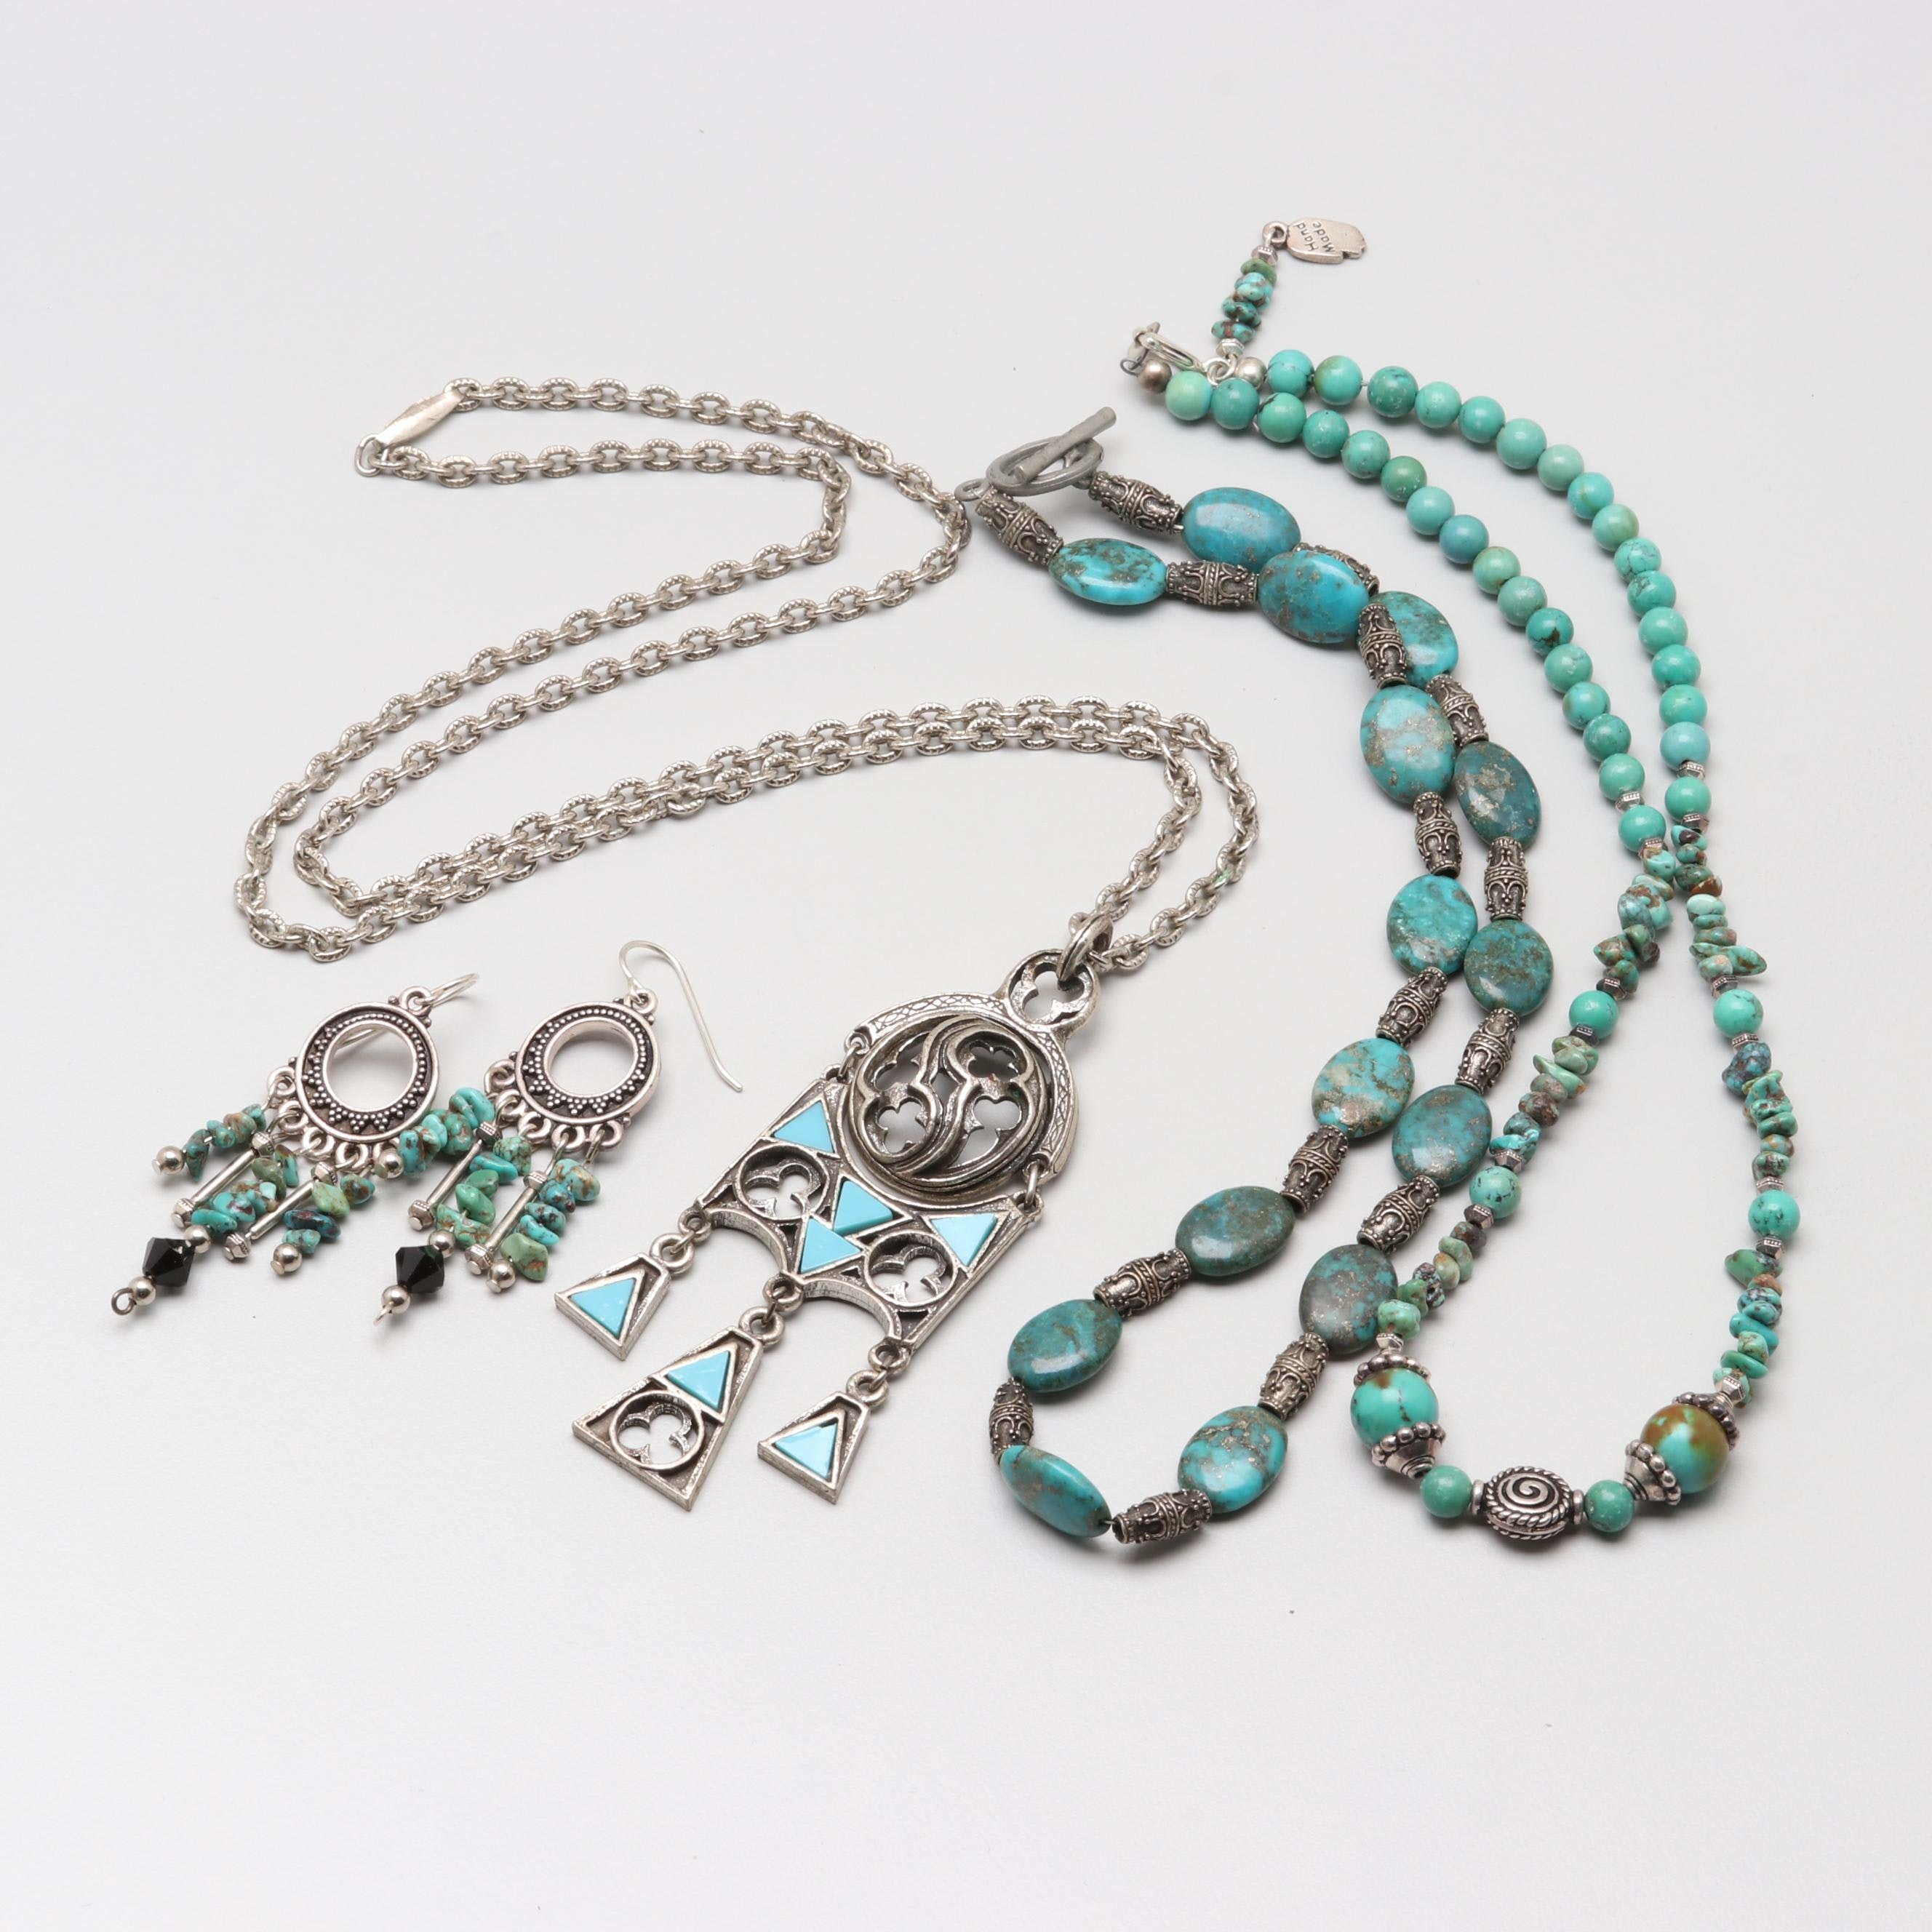 Silver Tone Turquoise Necklace and Earring Selection